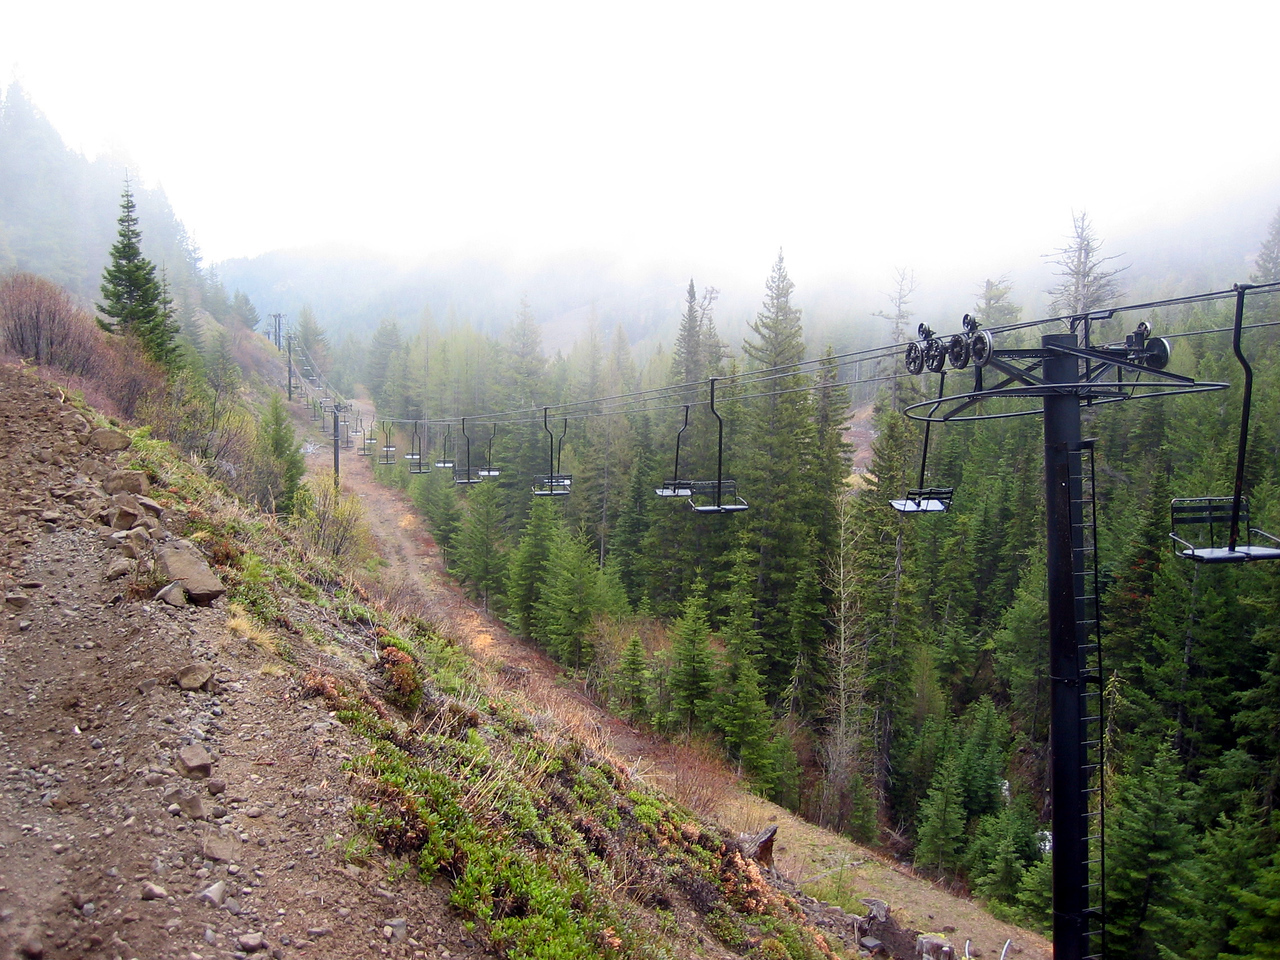 ski lift at mission ridge